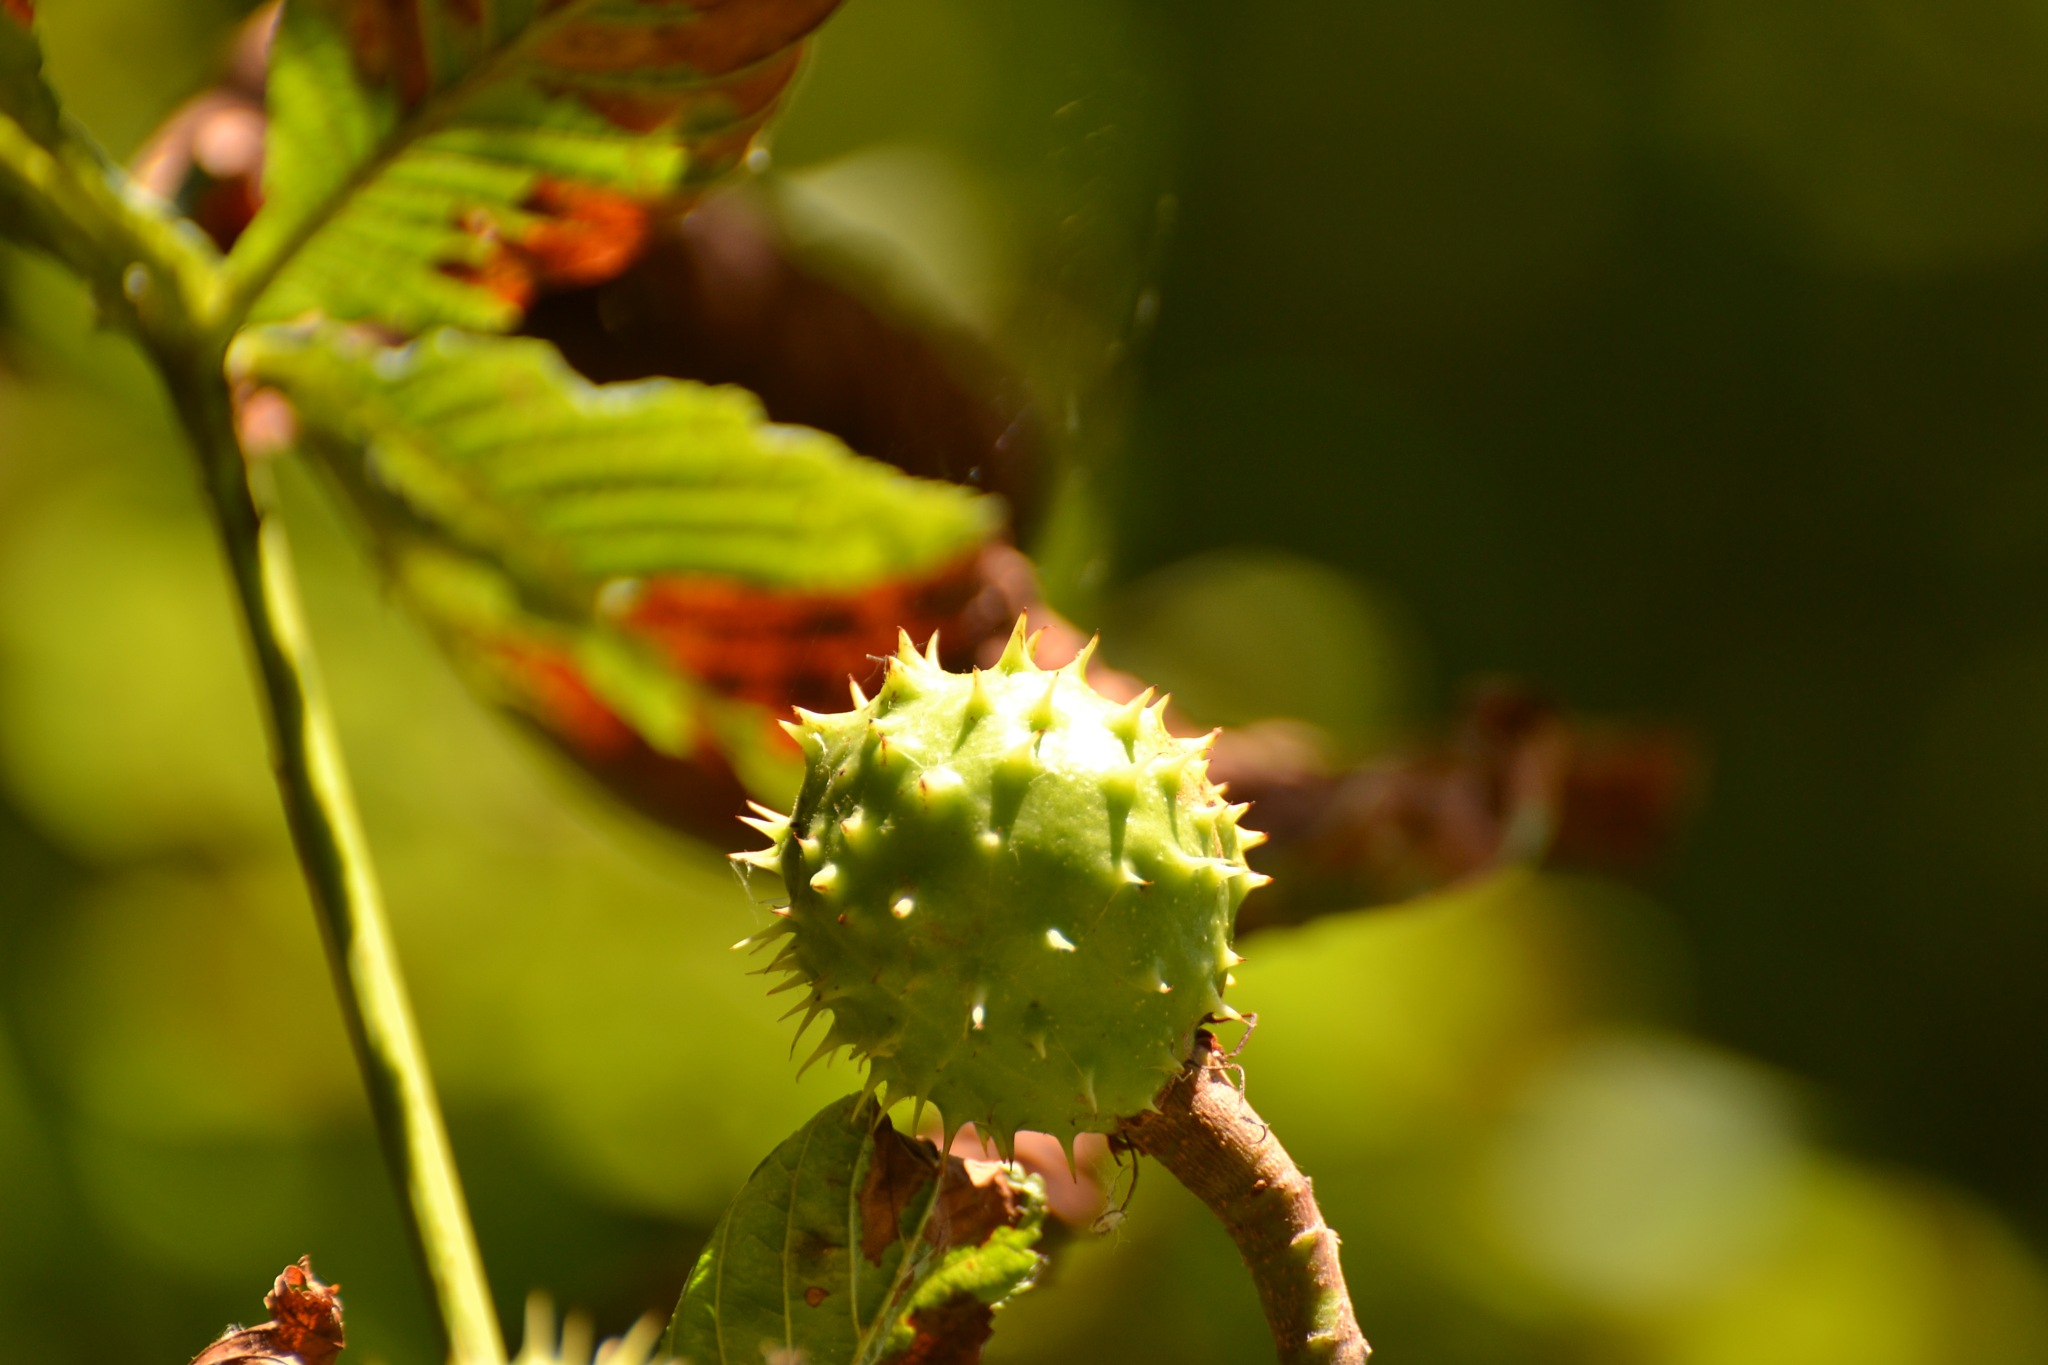 chestnut by ilseBodewes